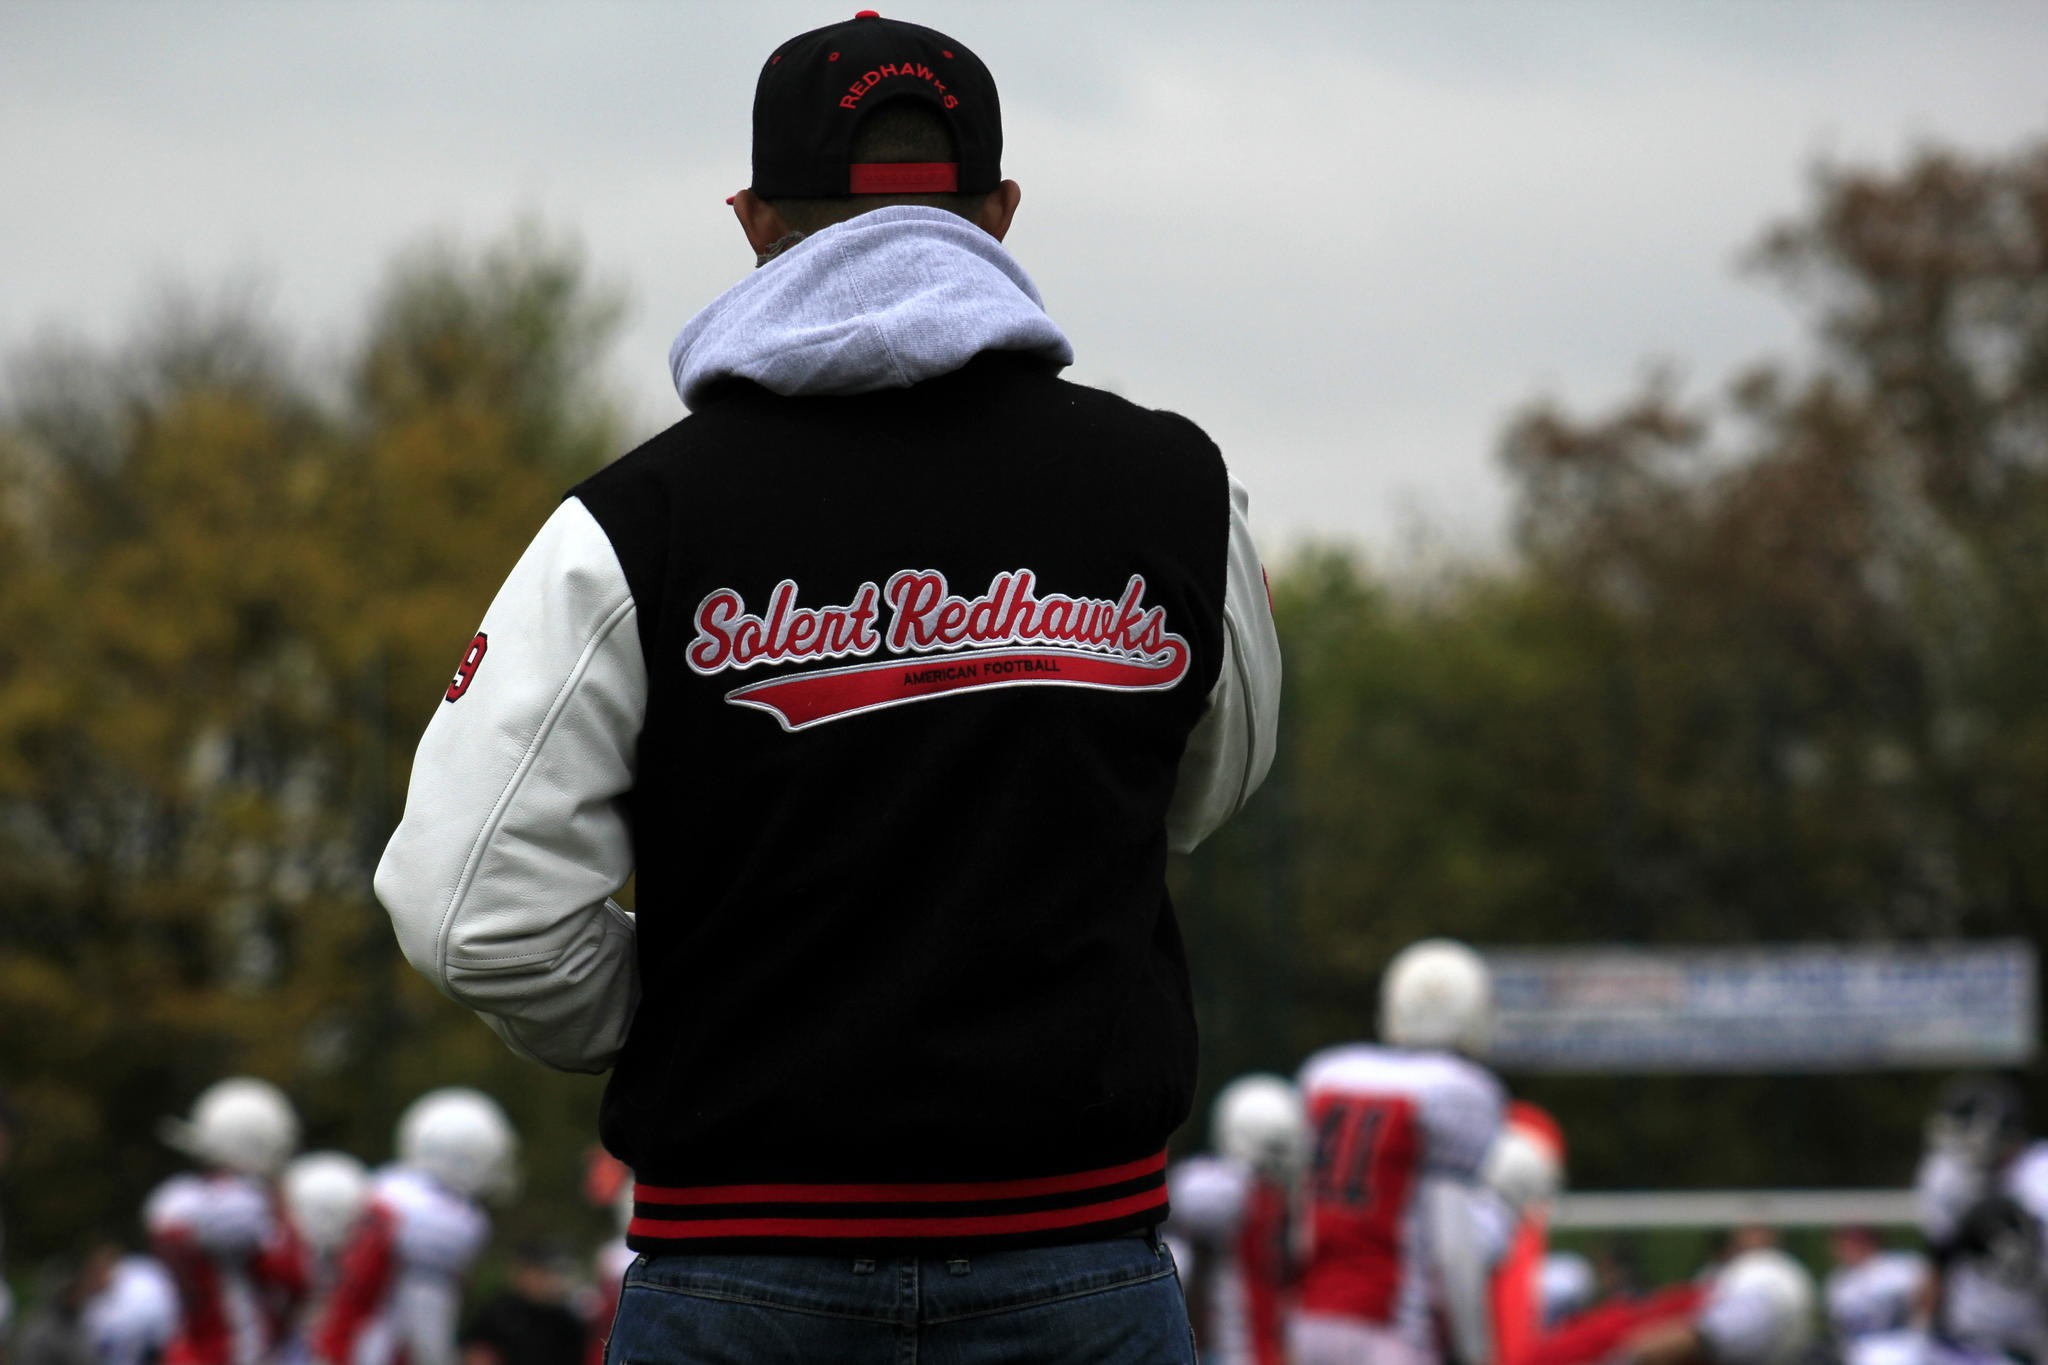 Solent Redhawks on the rise as American Football popularity grows in the UK